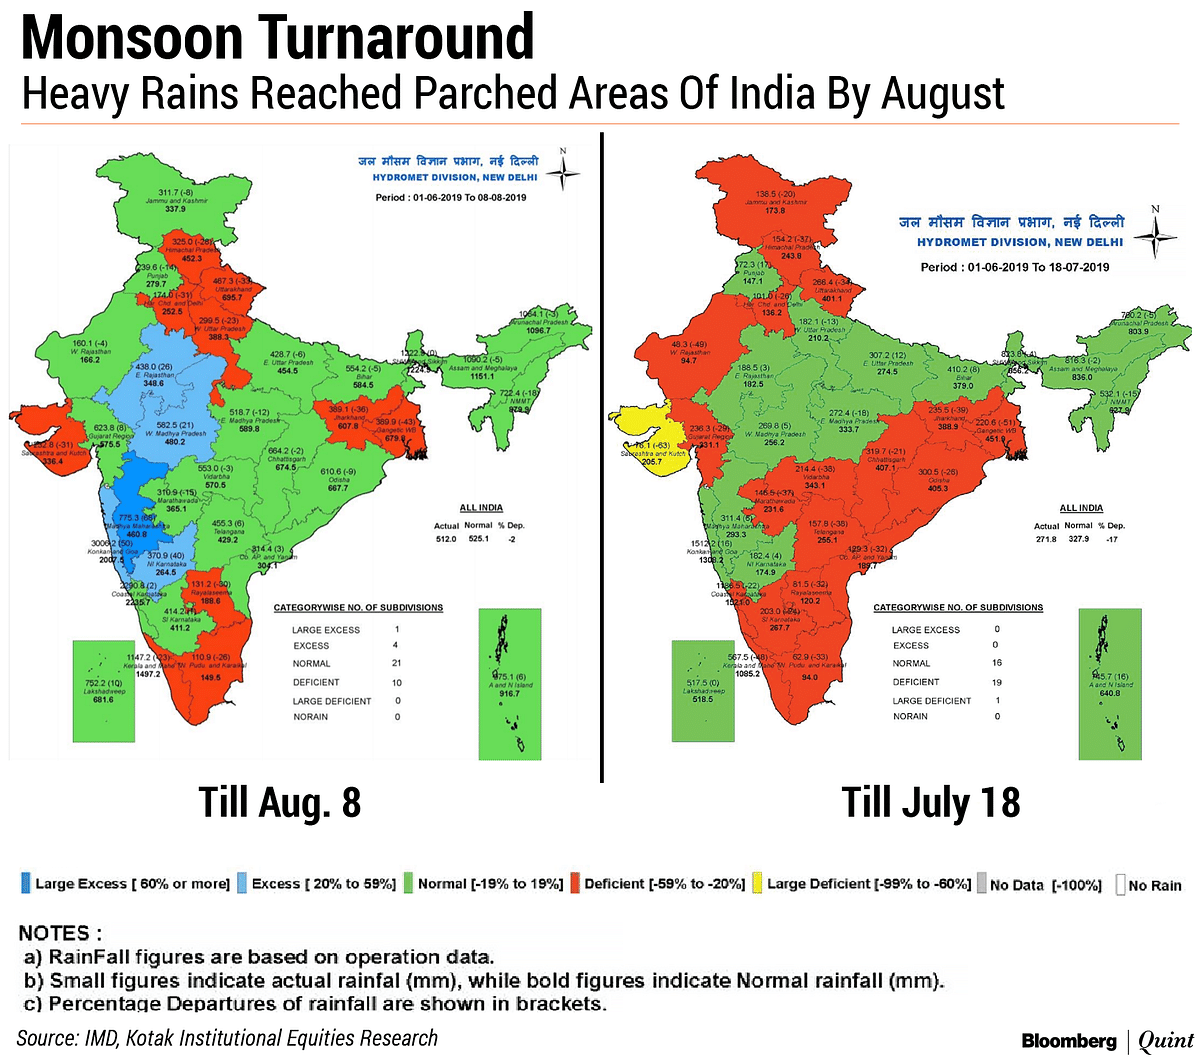 India's Monsoon Turnaround Revives Crop Sowing